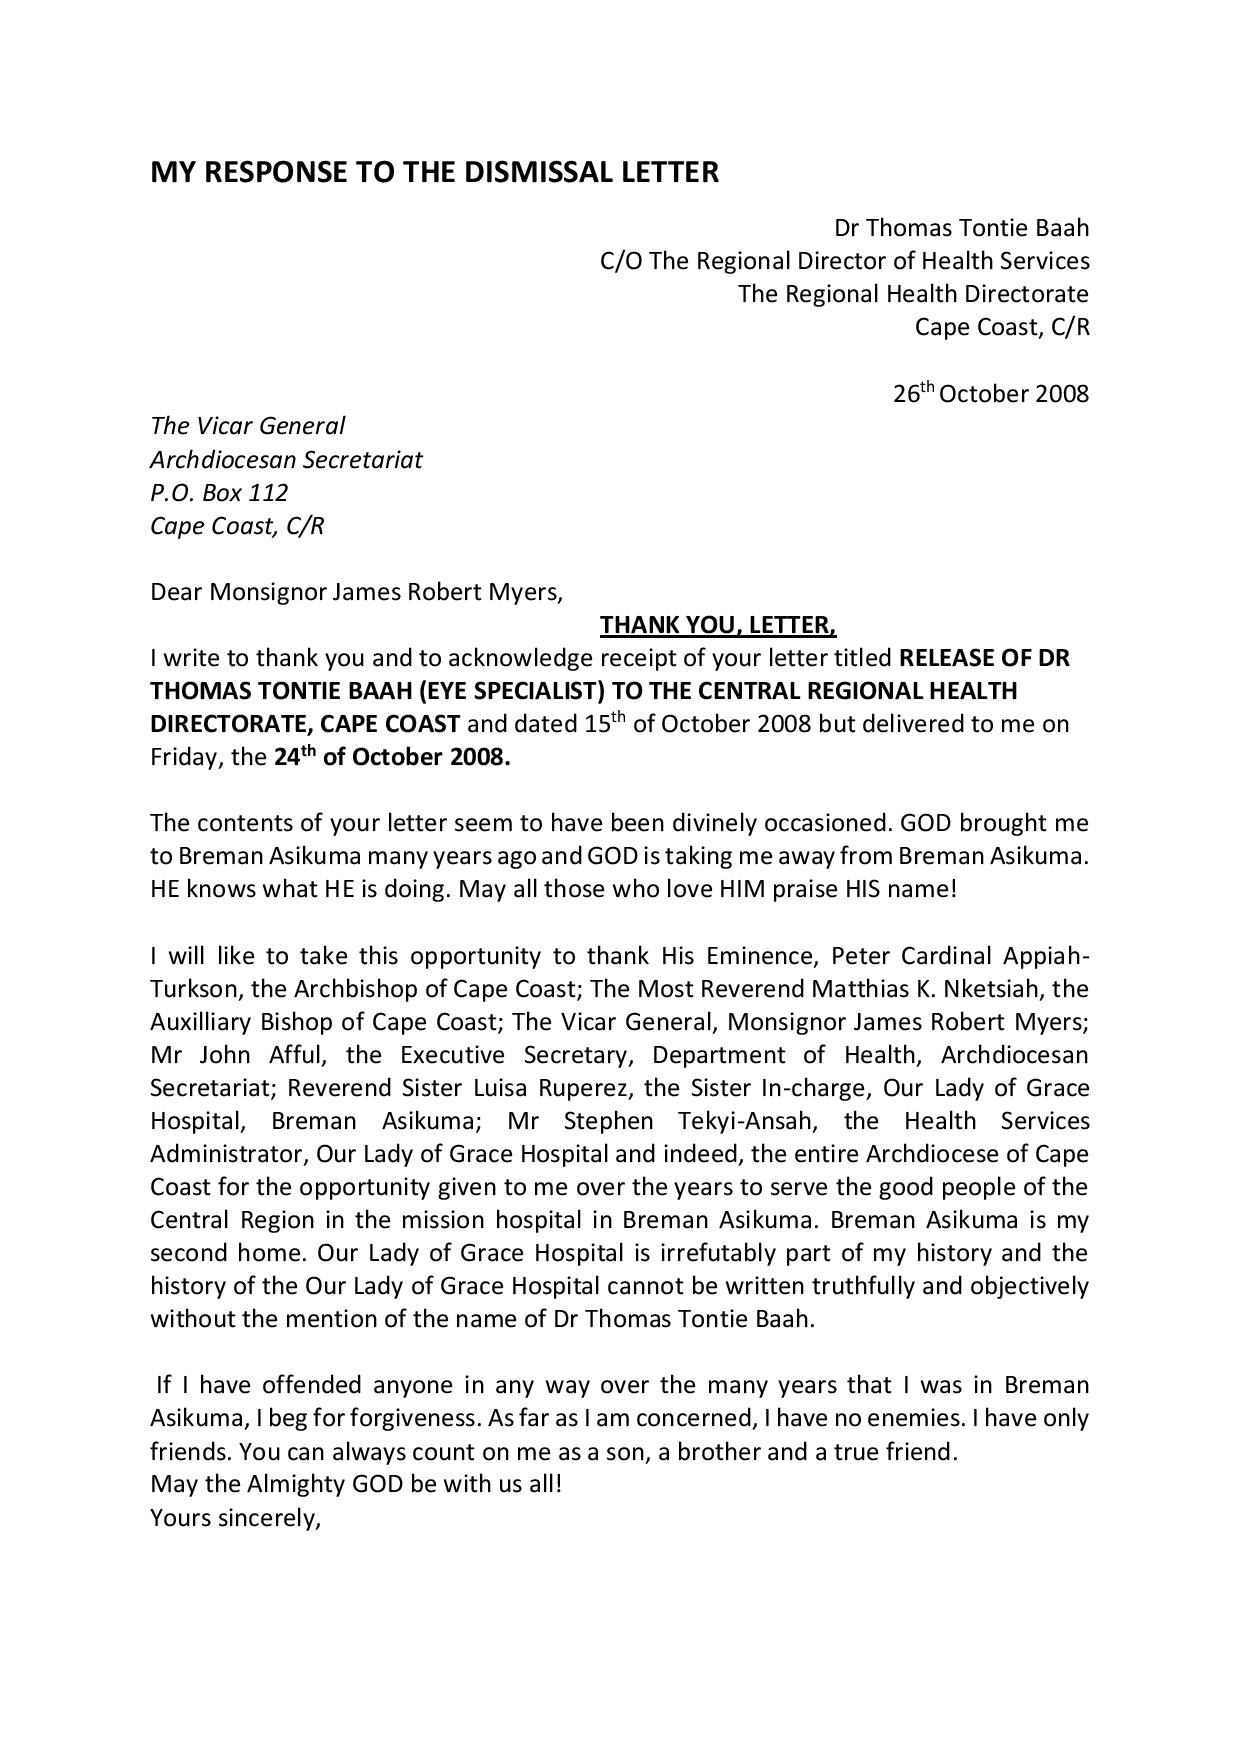 Dr. Thomas baah response to the dismissal letter